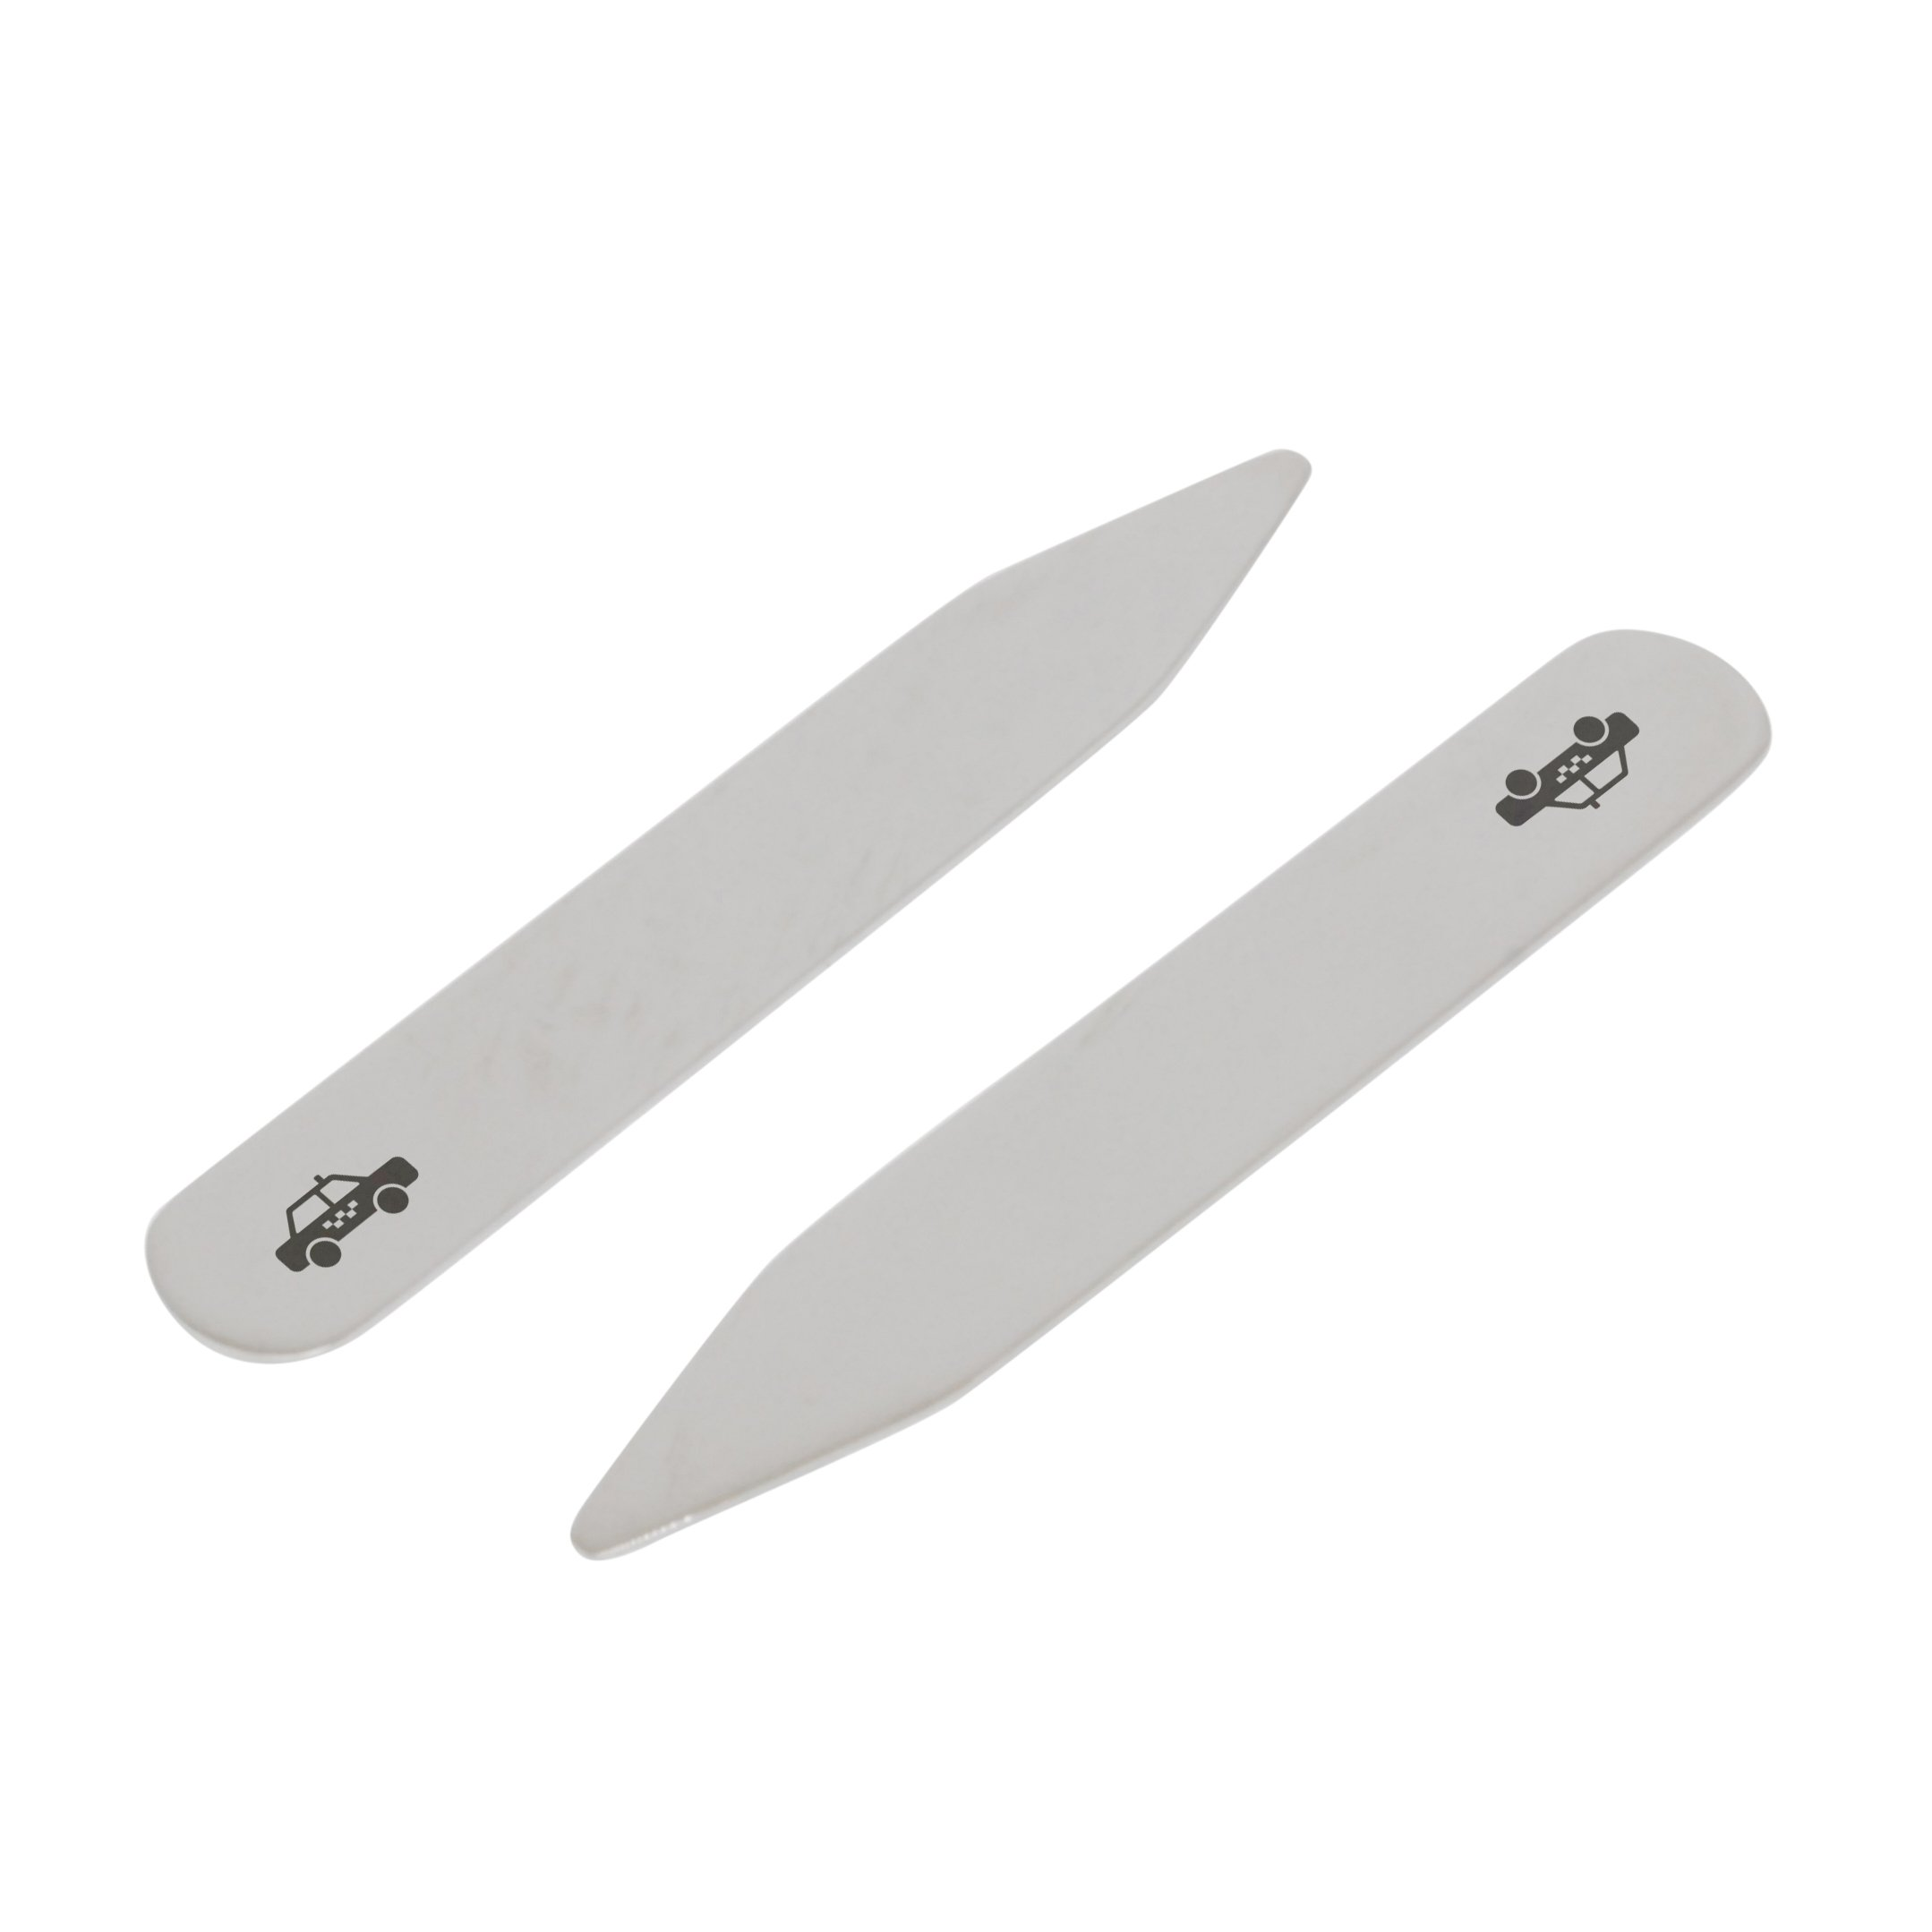 MODERN GOODS SHOP Stainless Steel Collar Stays With Laser Engraved Taxi Cab Design - 2.5 Inch Metal Collar Stiffeners - Made In USA